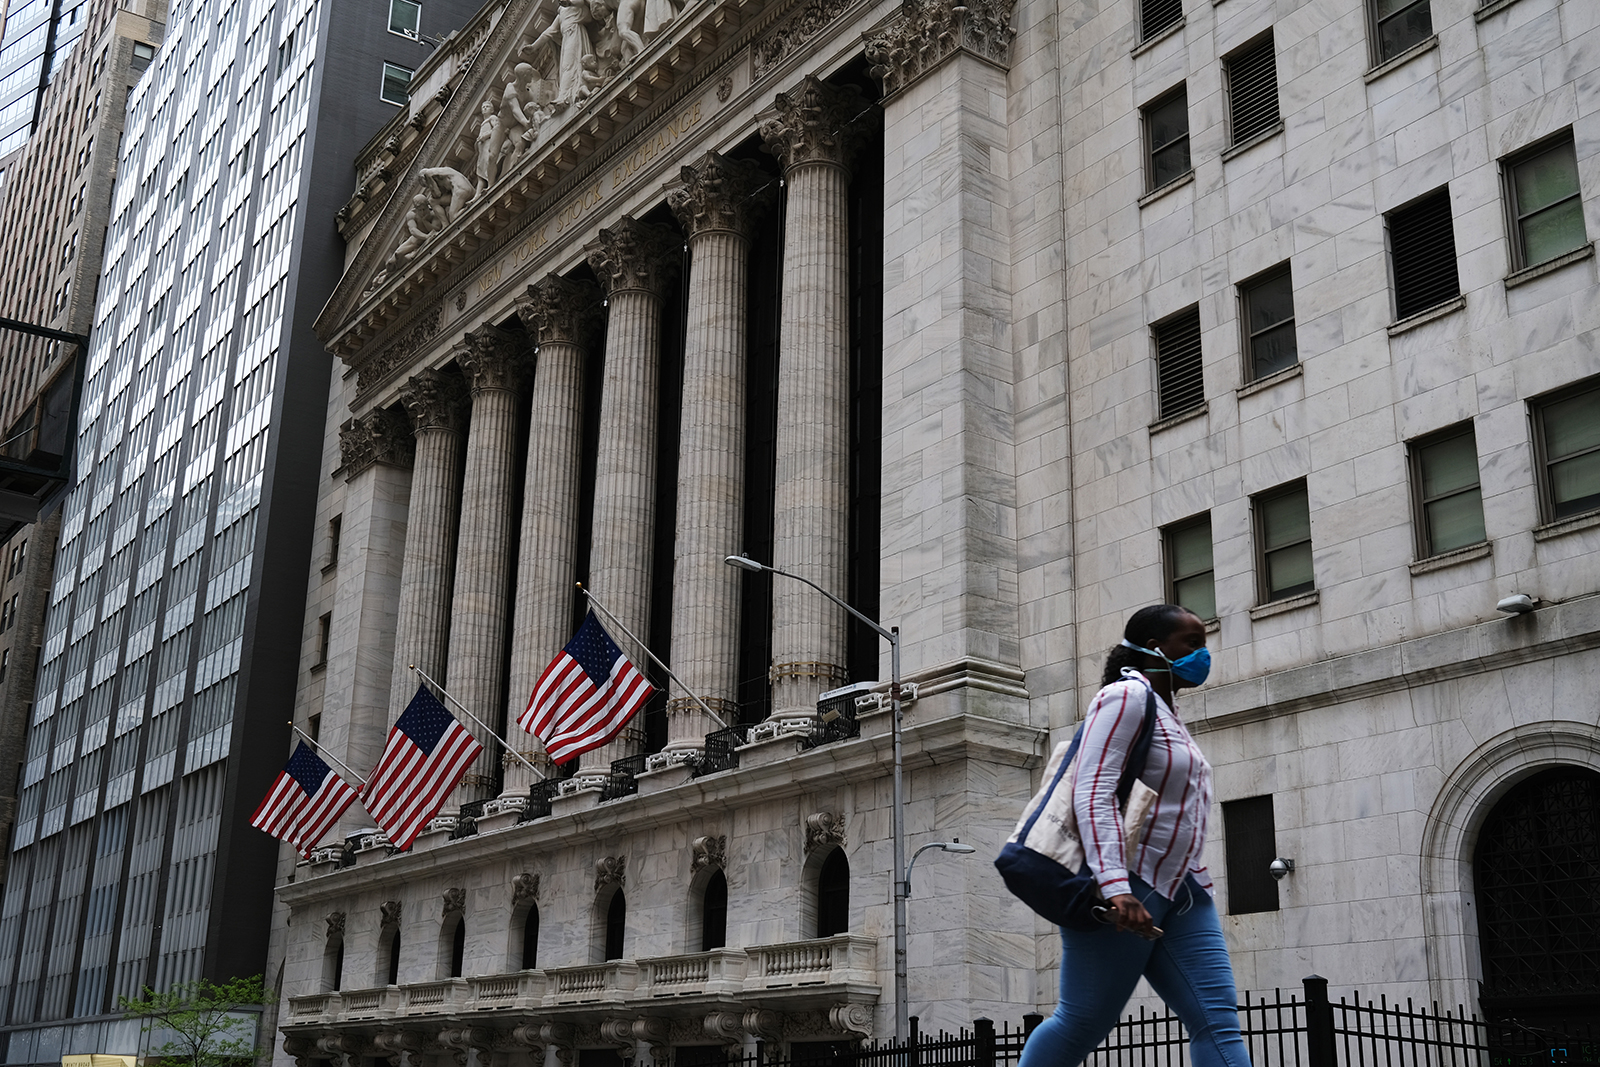 People walk by the New York Stock Exchange (NYSE) in New York City on May 18.